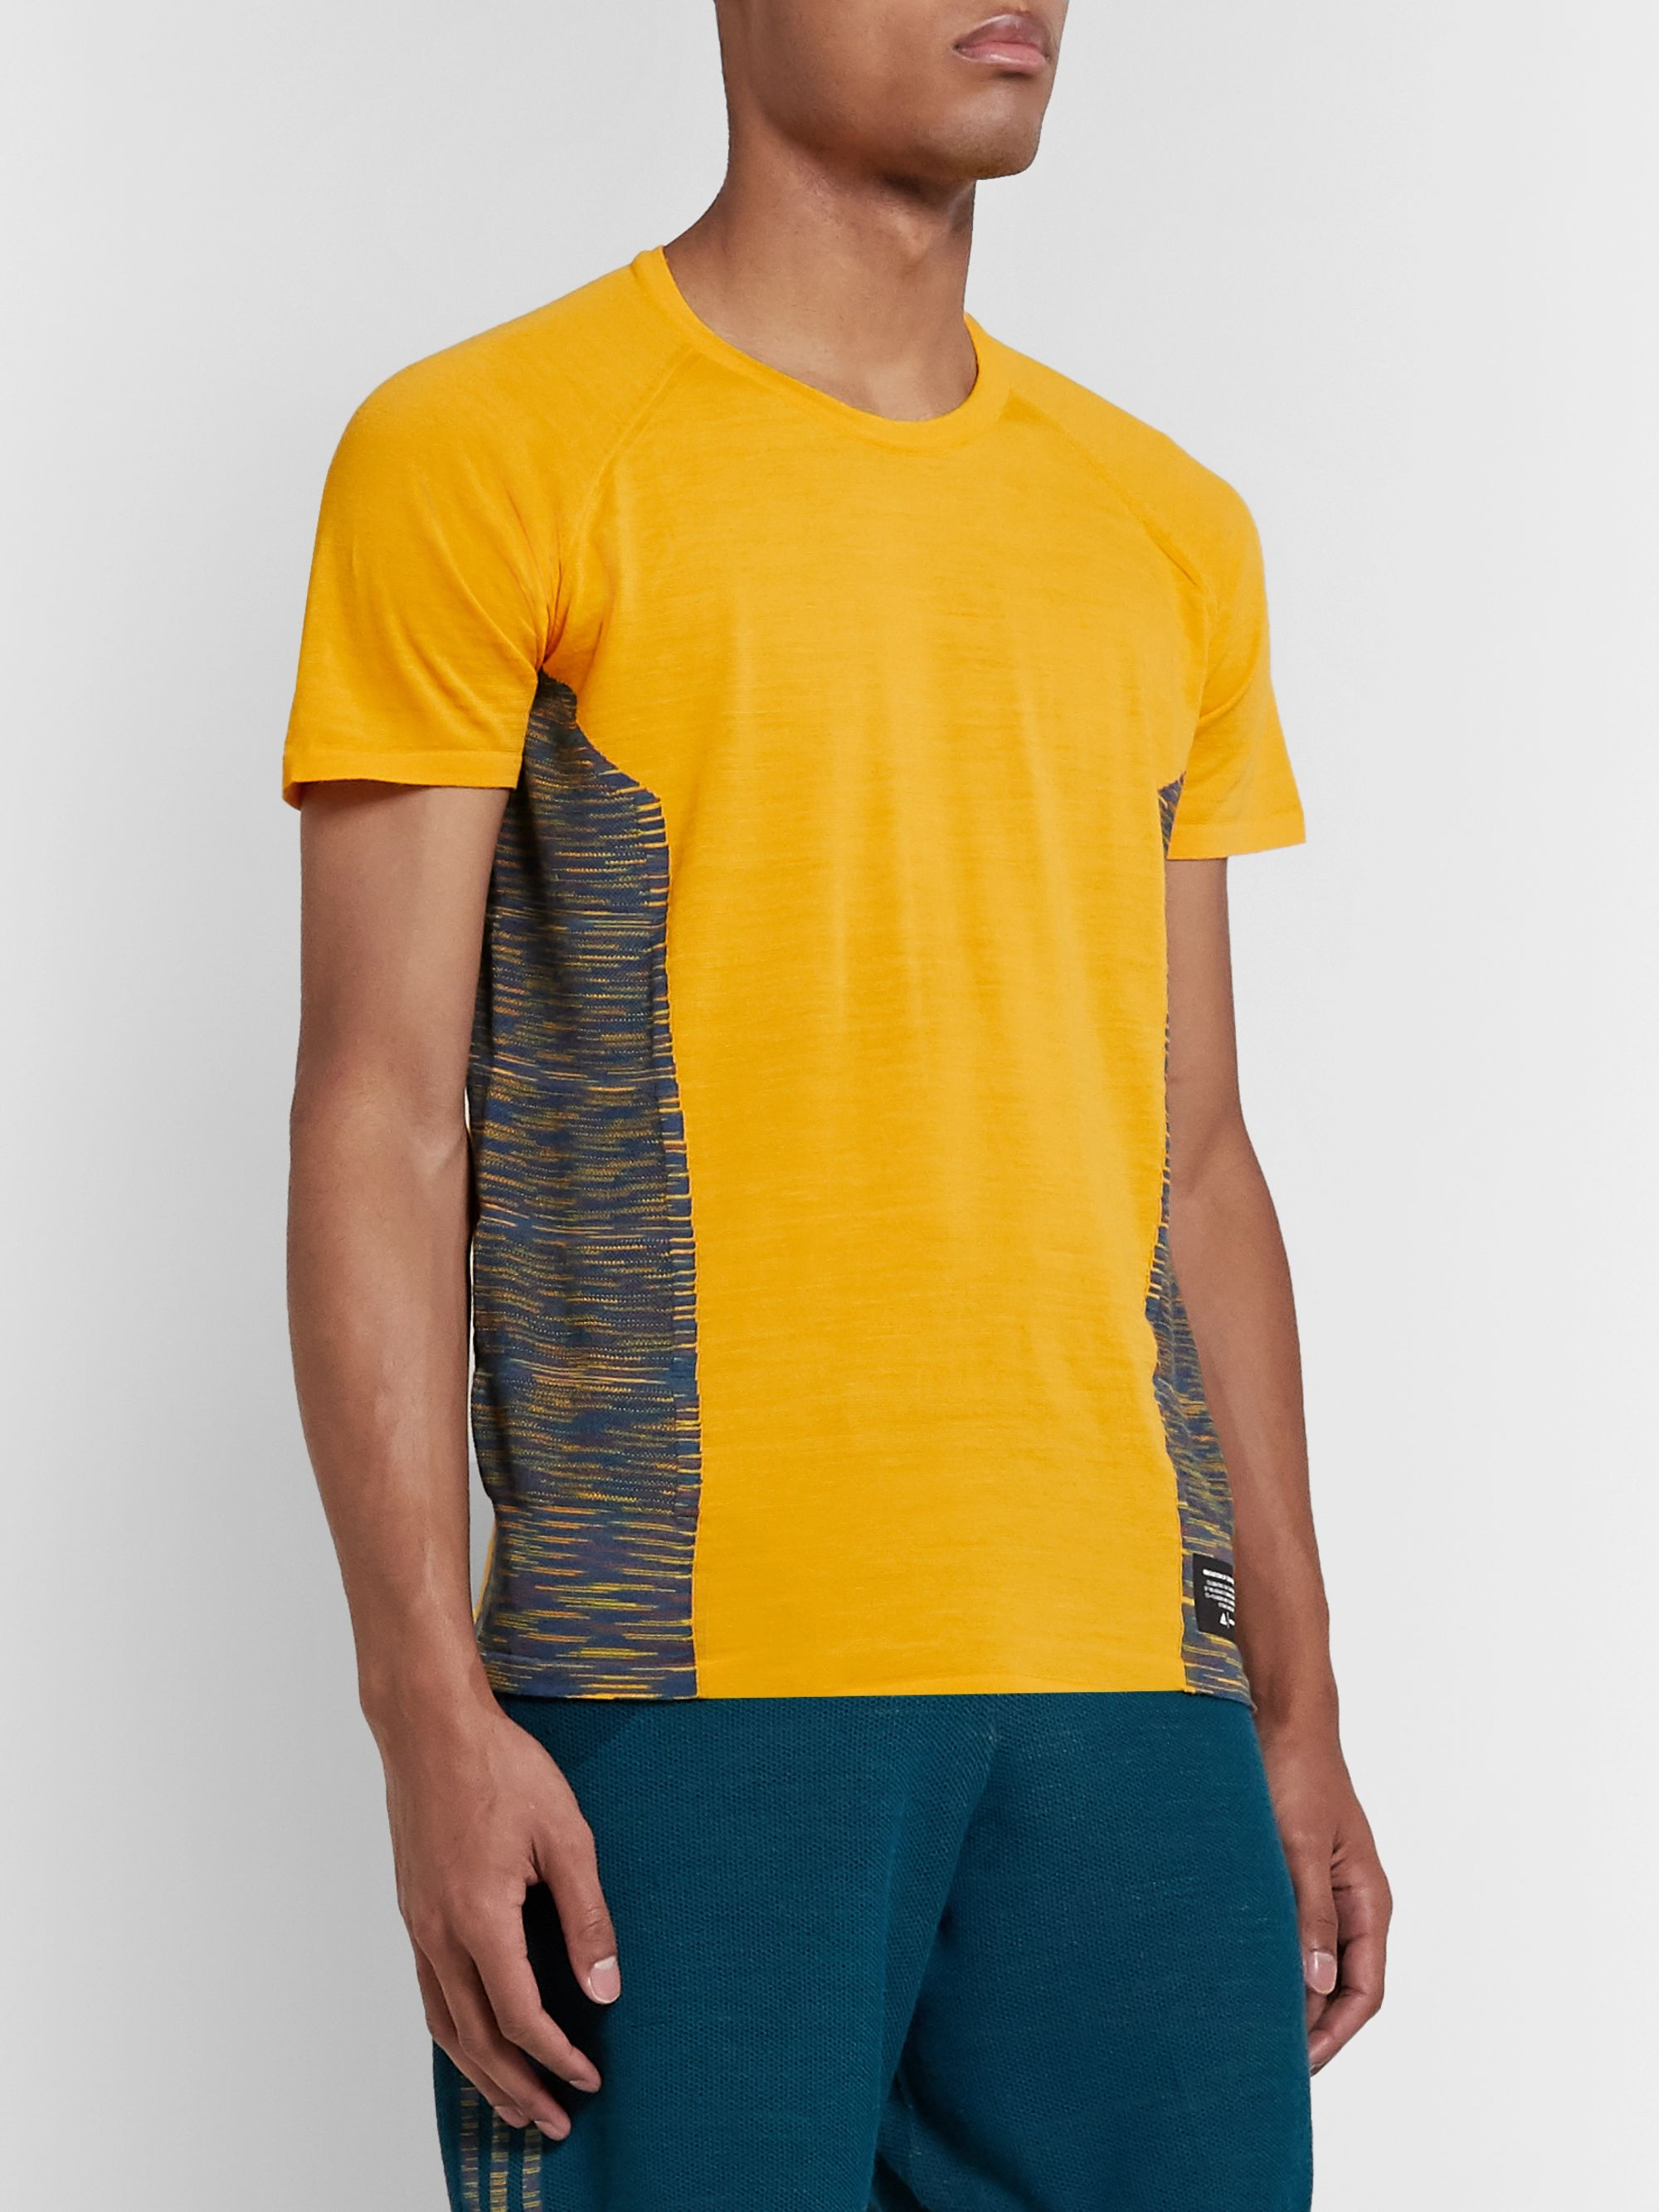 adidas Consortium + Missoni Space-Dyed Stretch-Knit T-Shirt